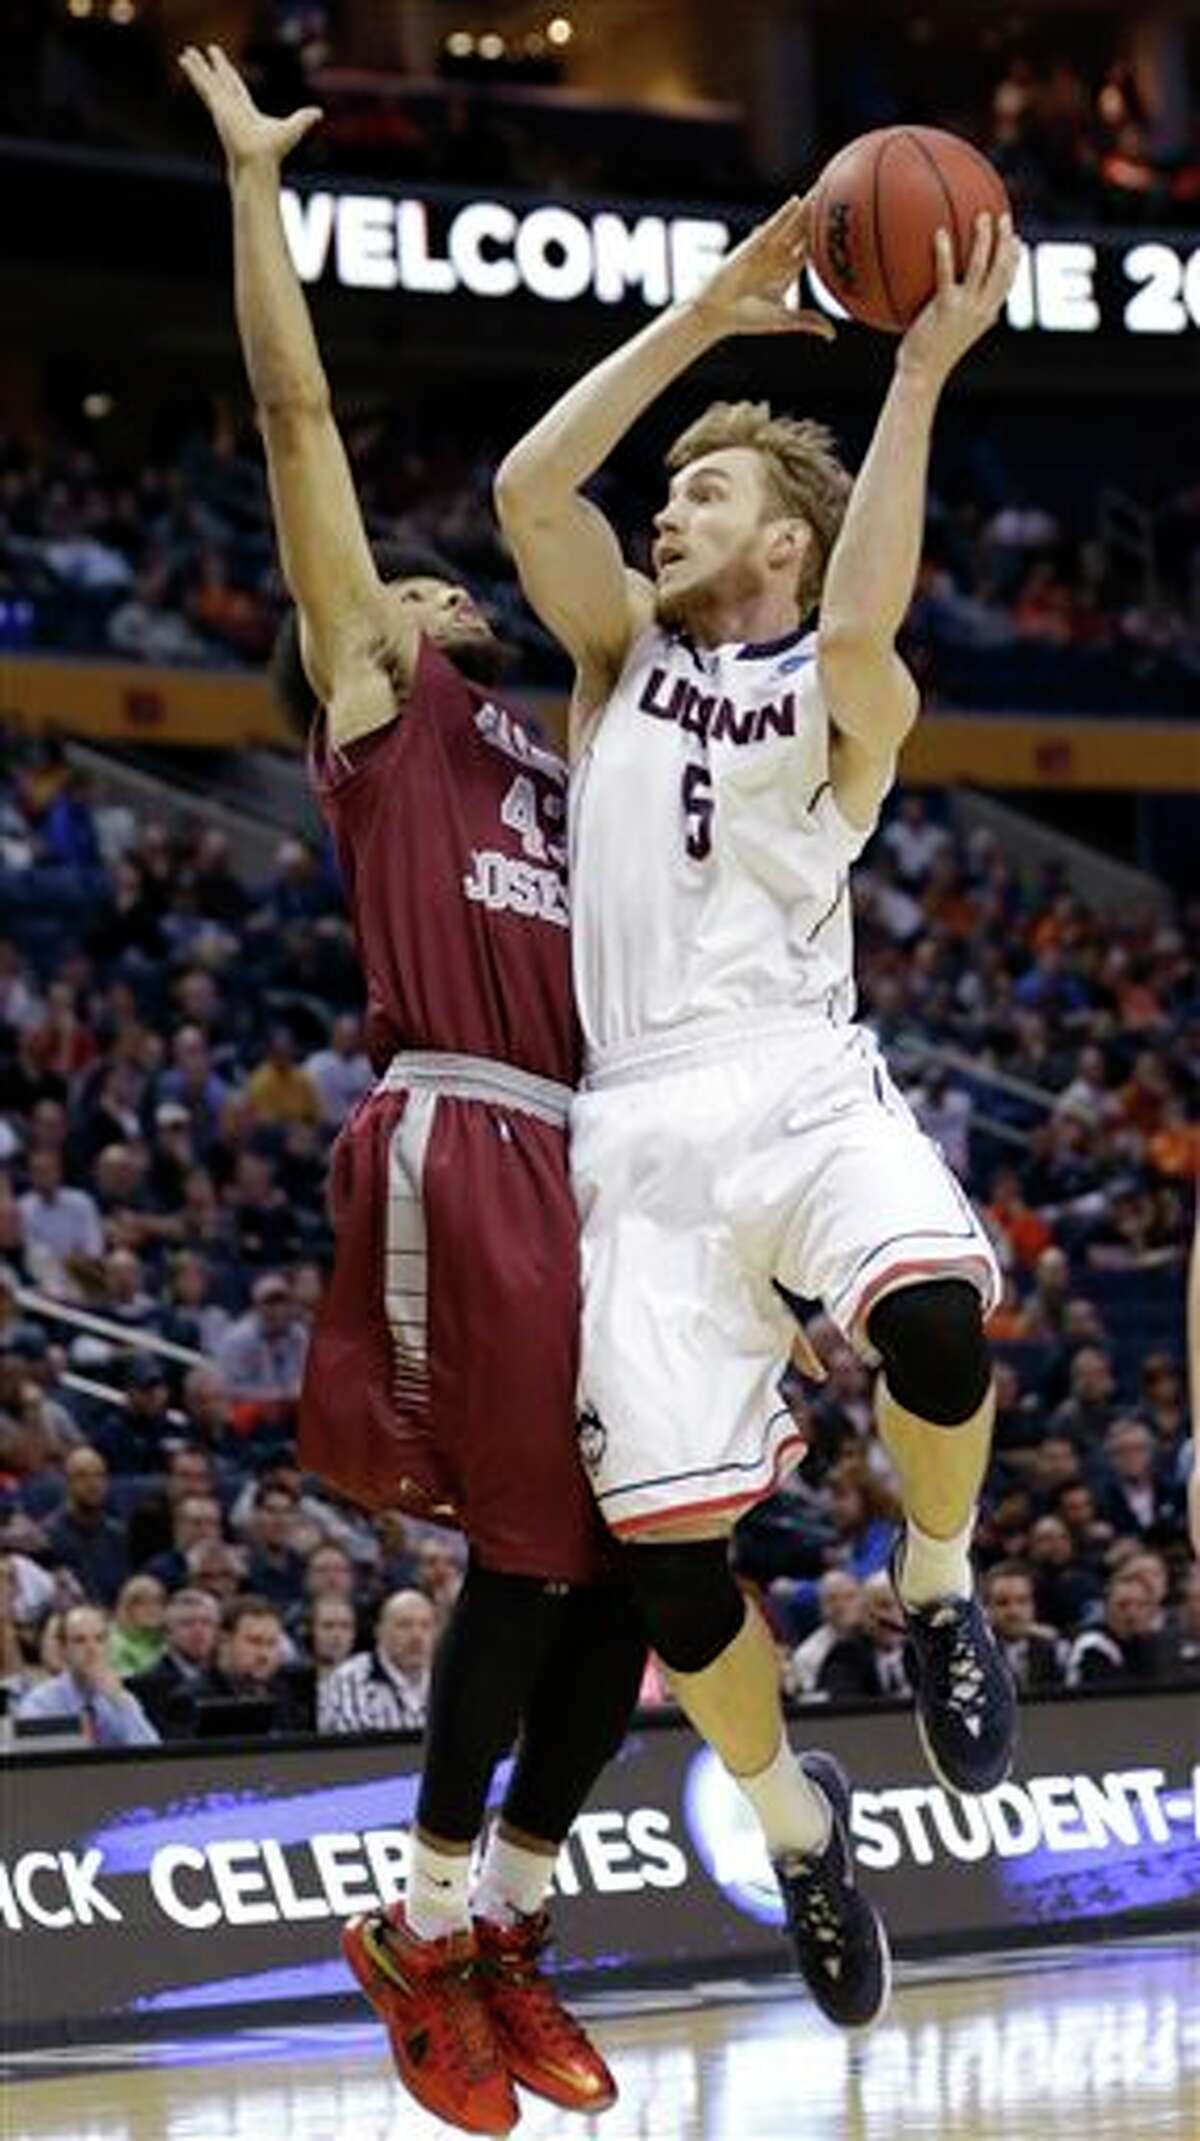 Connecticut's Niels Giffey (5) shoots over Saint Joseph's DeAndre Bembry (43) during the first half of a second-round game in the NCAA men's college basketball tournament in Buffalo, N.Y., Thursday, March 20, 2014. (AP Photo/Frank Franklin II)